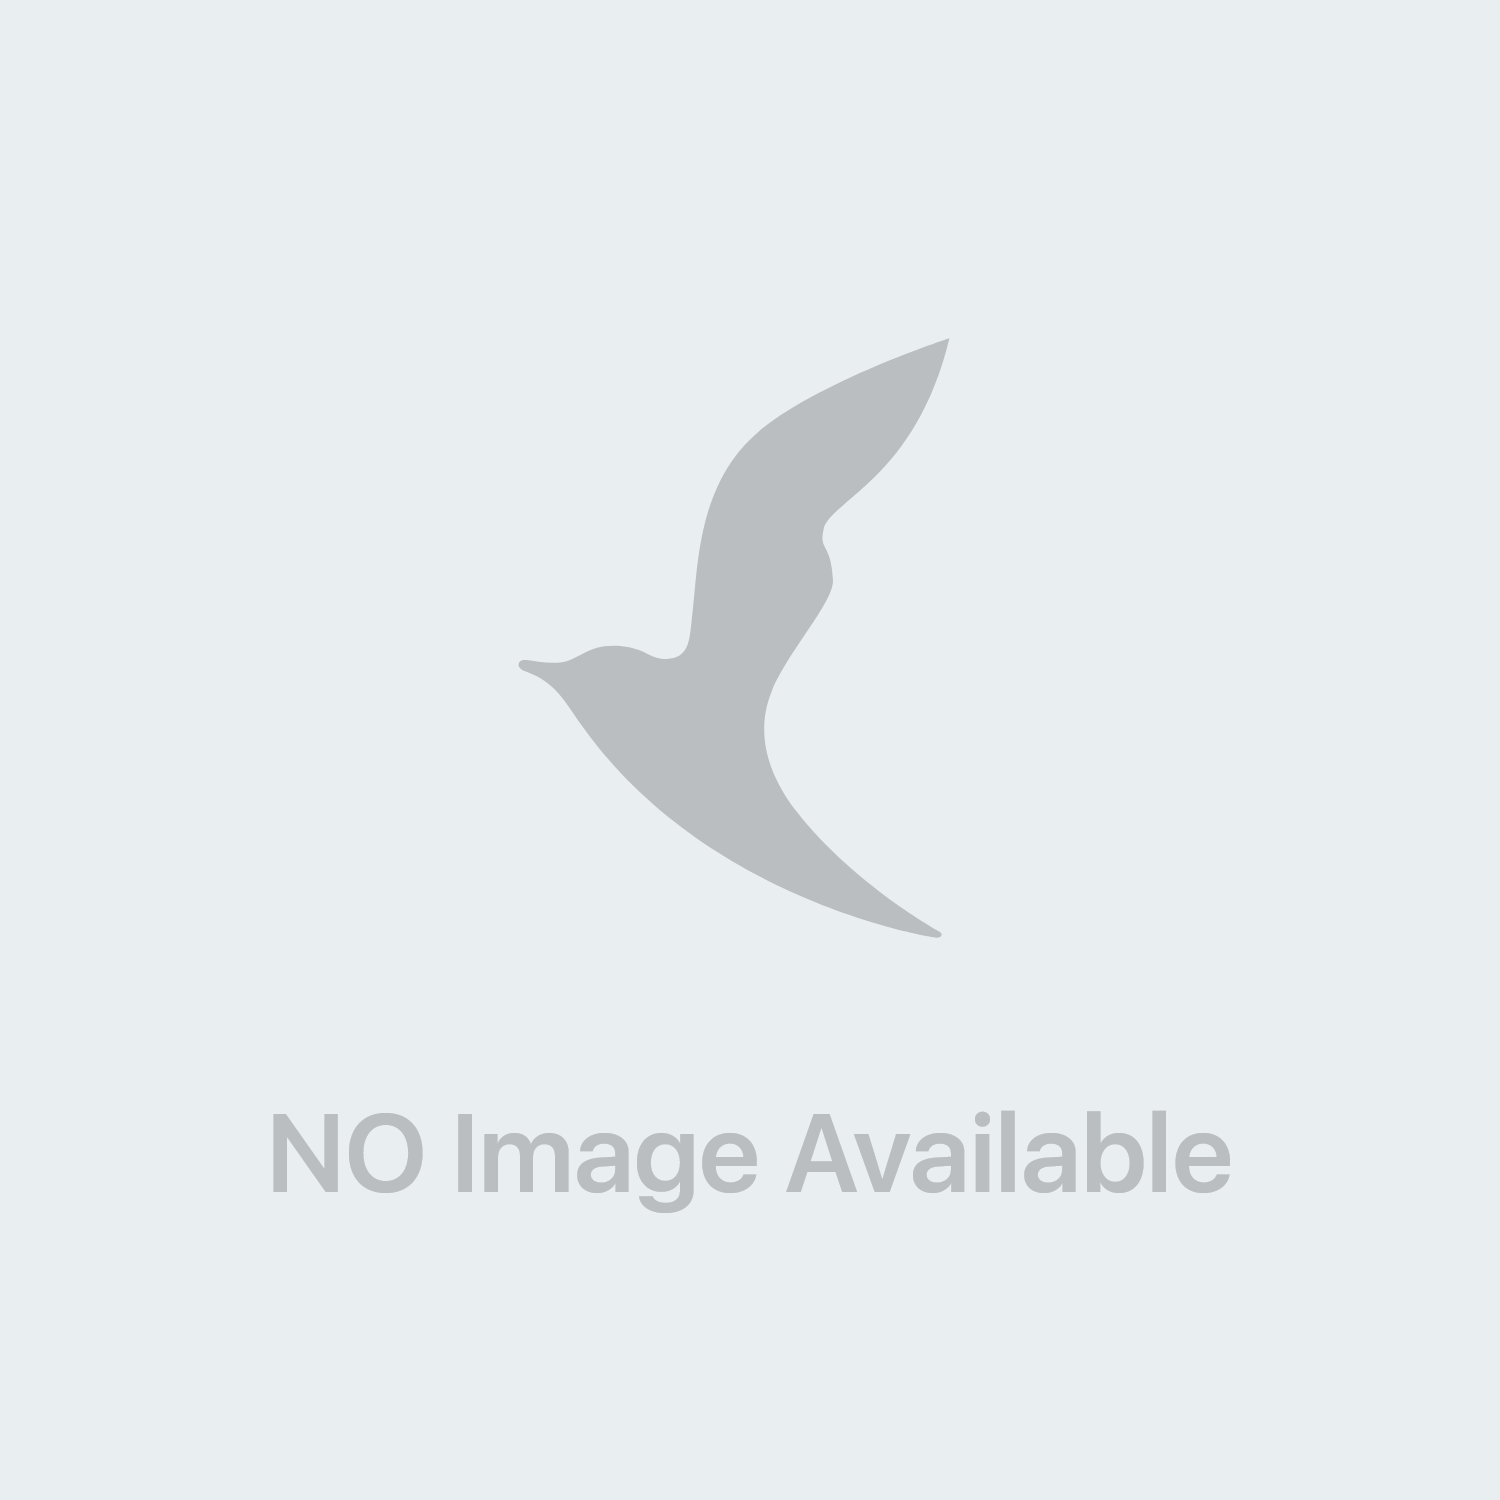 Amorolfina Mylan 5% Smalto Antimicotico Per Unghie 2,5 ml